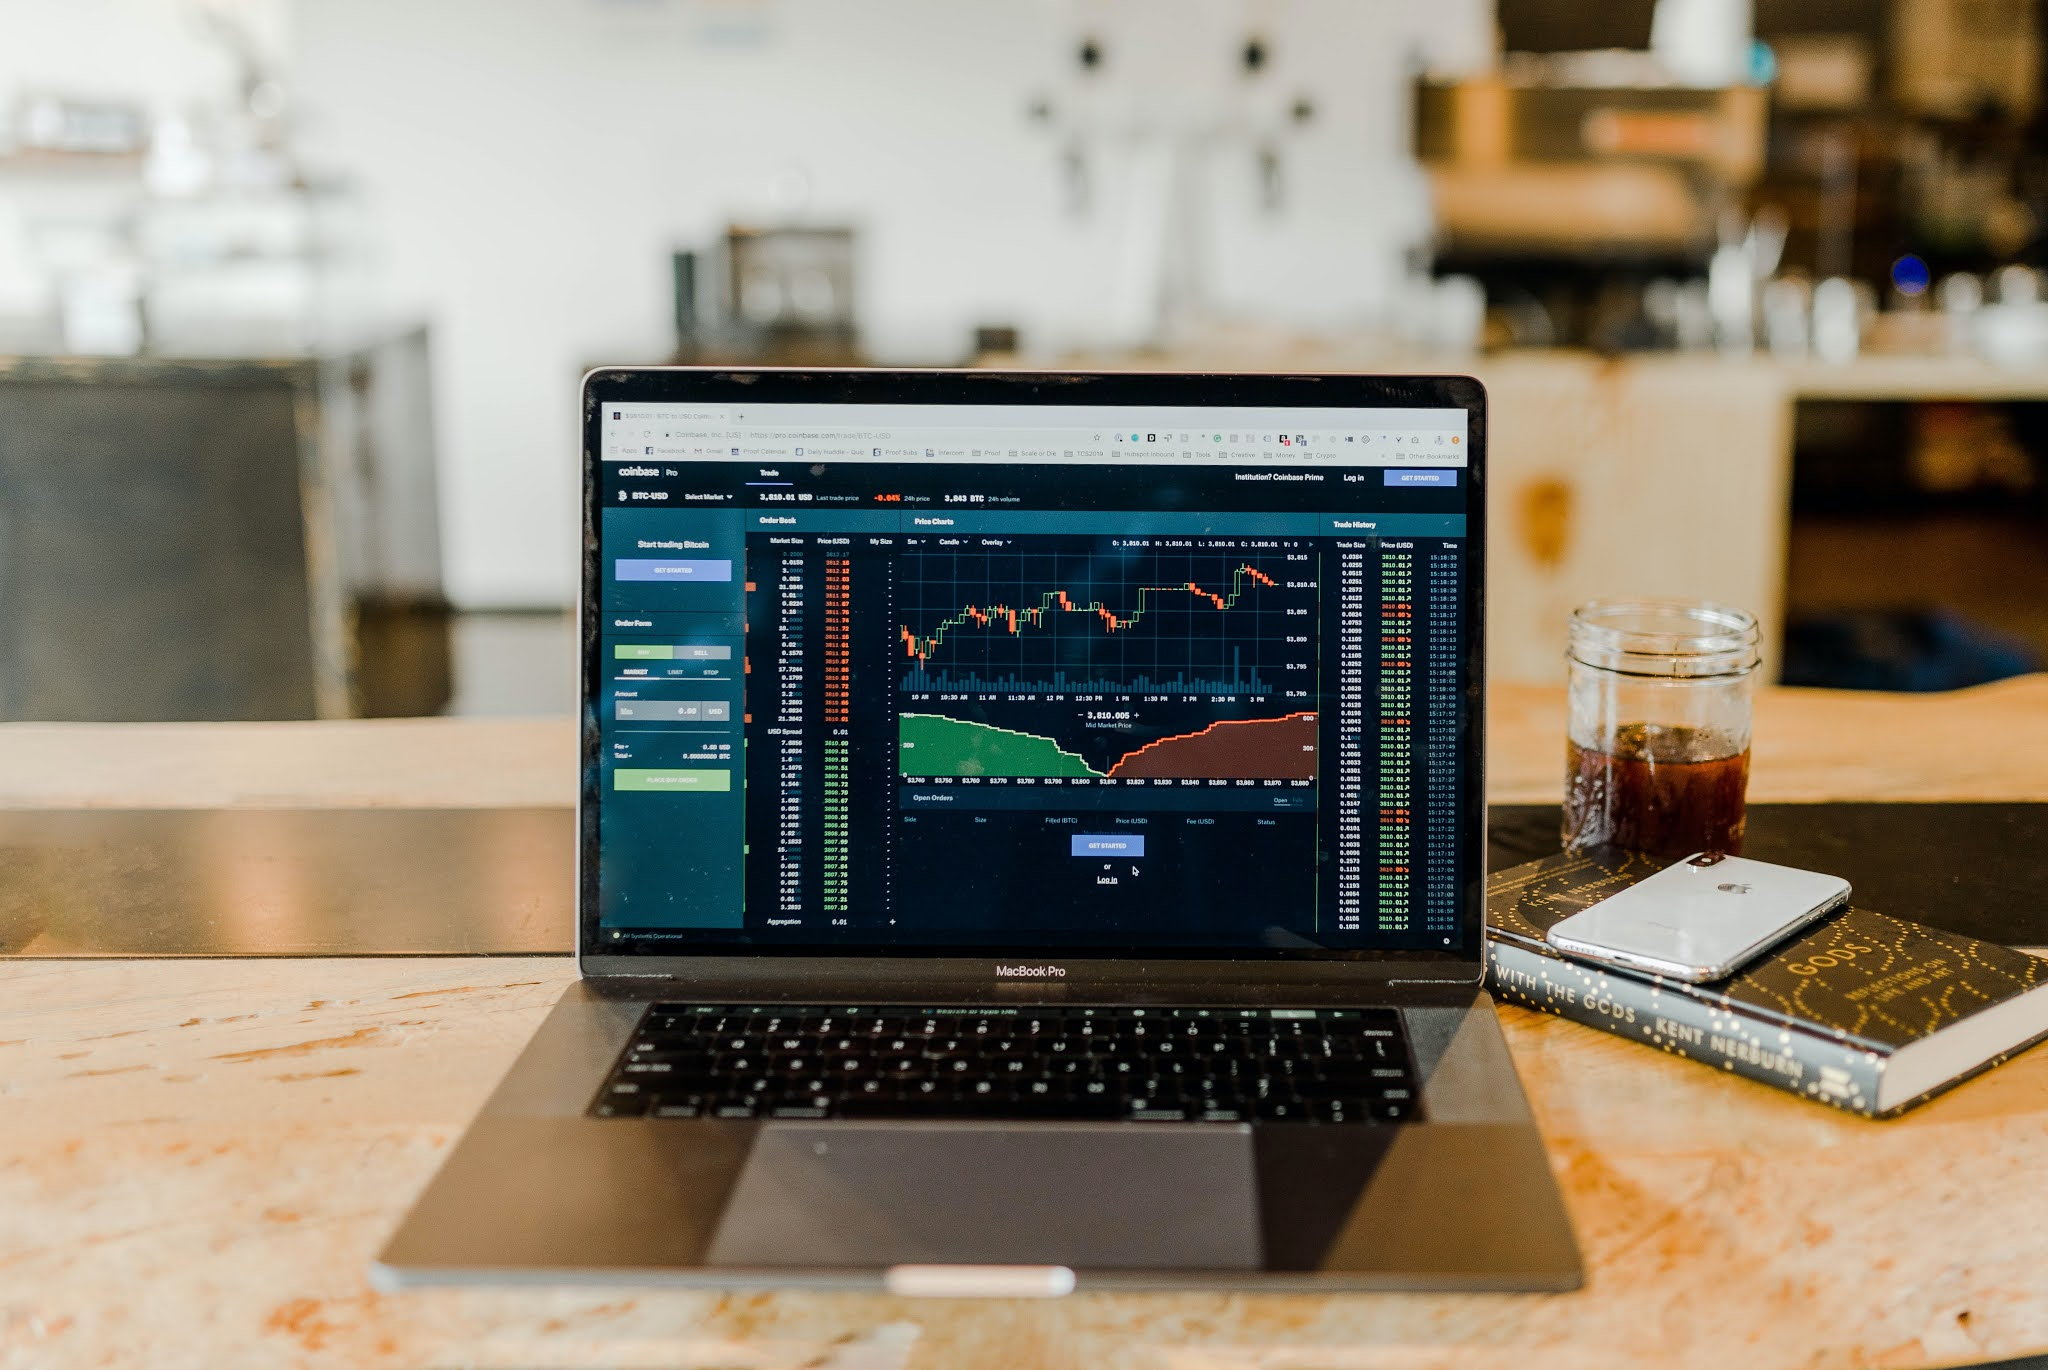 The Complete Foundation Stock Trading Course Free Download - Google Drive Links